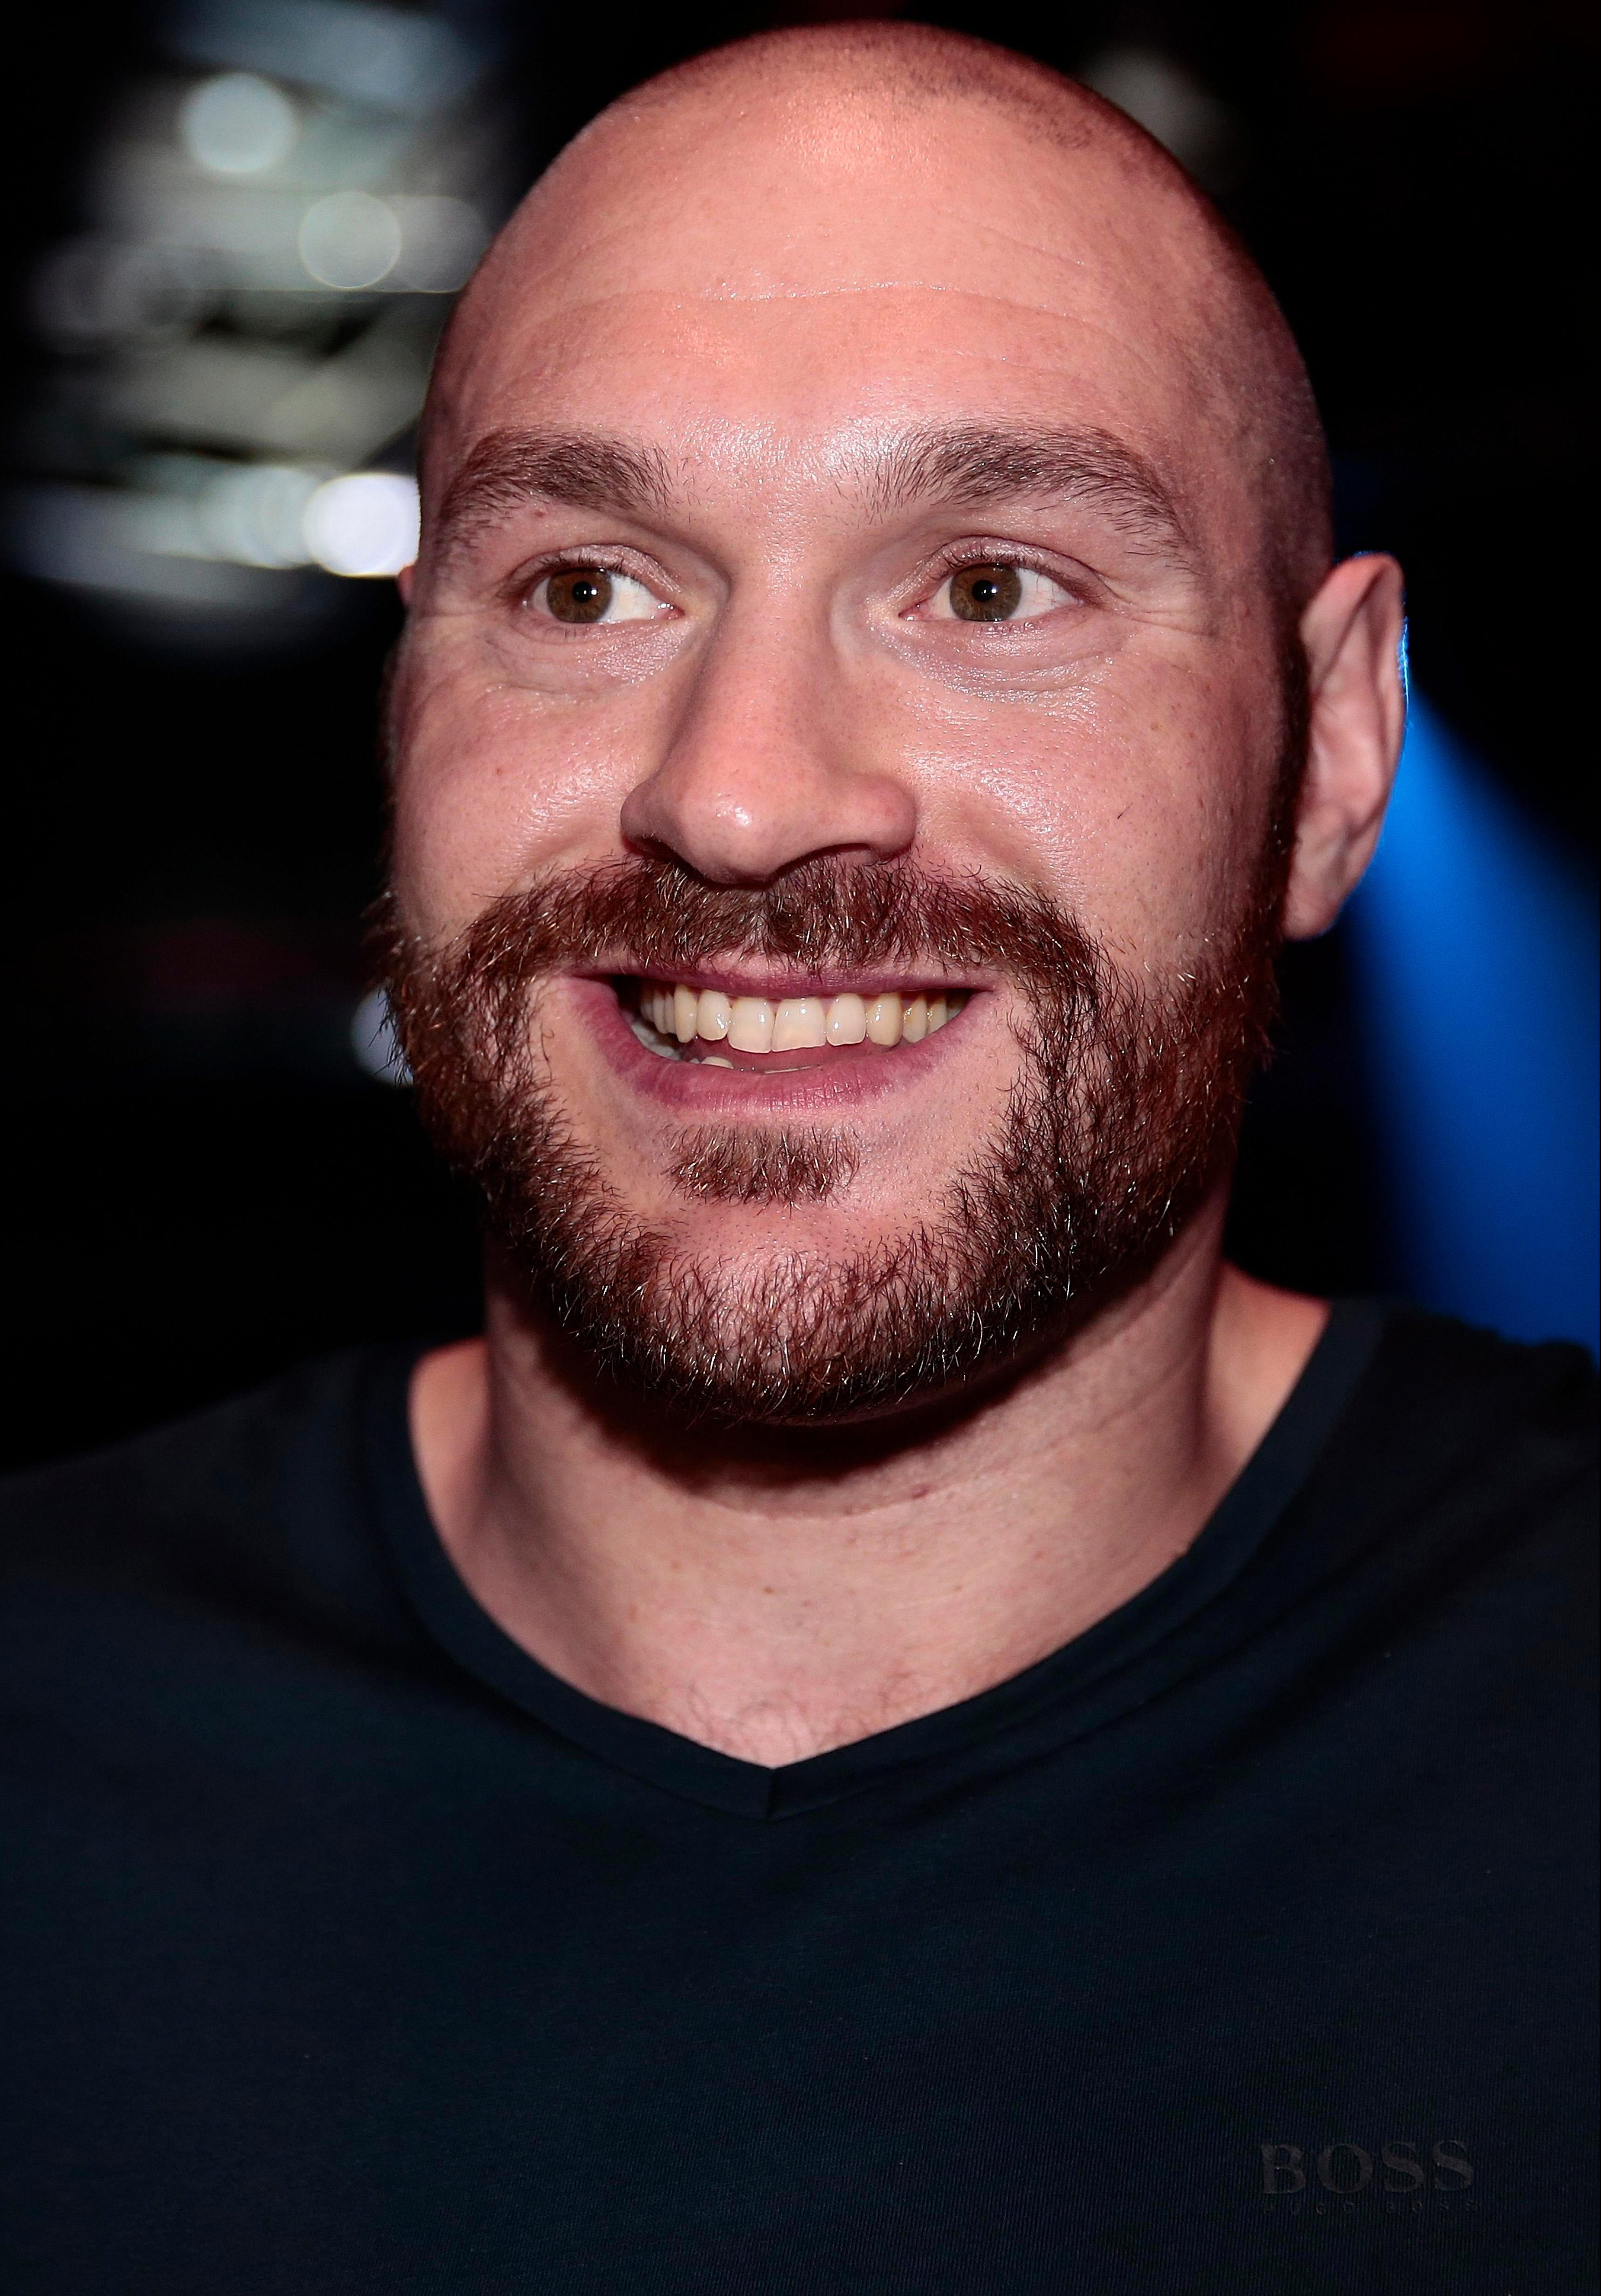 Tyson Fury should be able to get a world title shot, Colin Hart believes